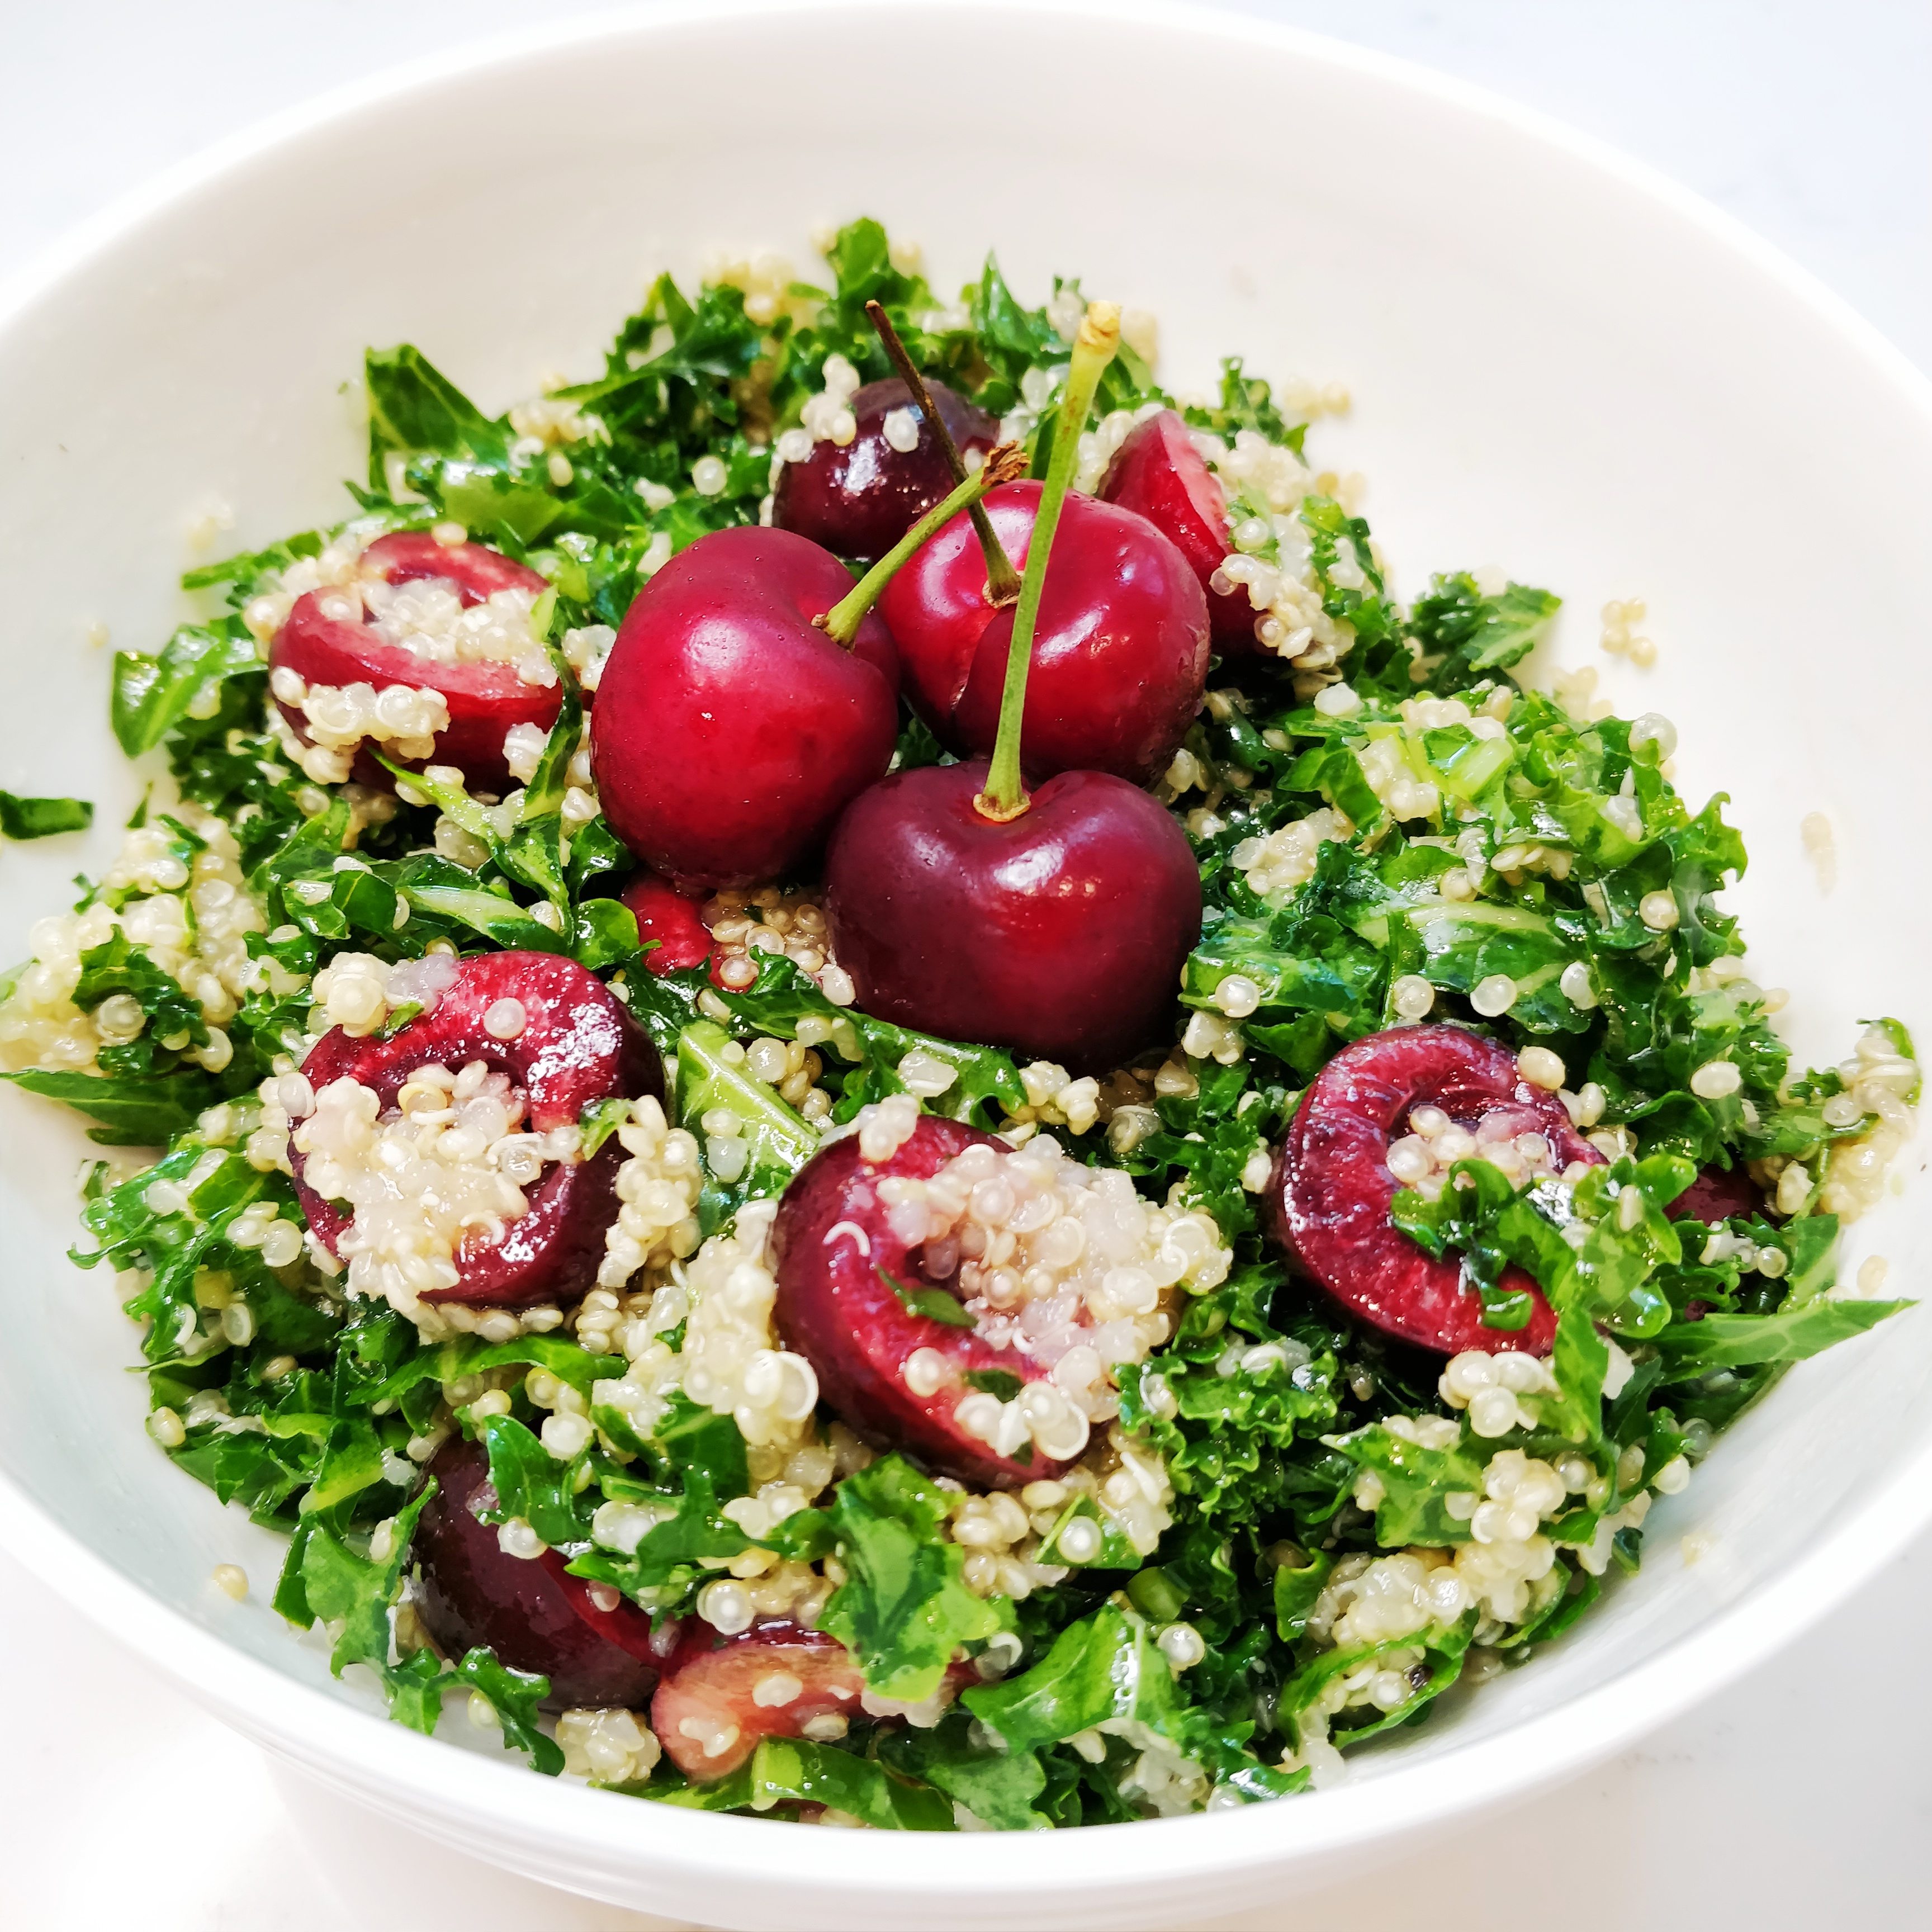 Kale and Quinoa Salad with Cherries